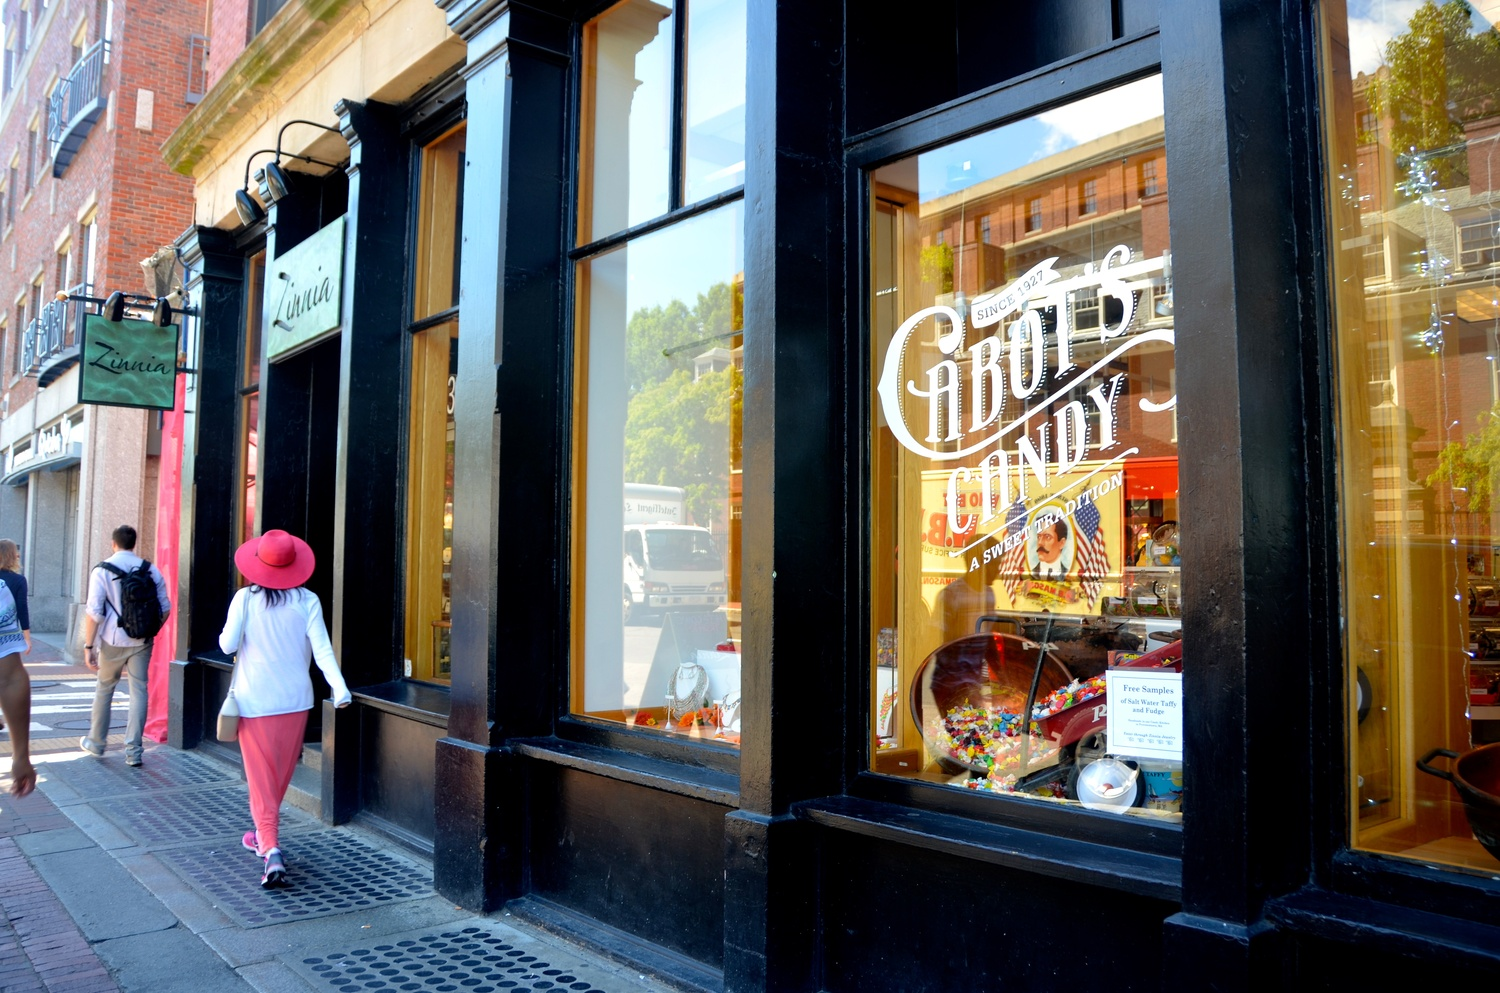 Passerby walk past Cabot's Candy in Harvard Square on Thursday afternoon. The store, which opened July 22, sells a variety of candy including salt water taffy and fudge.